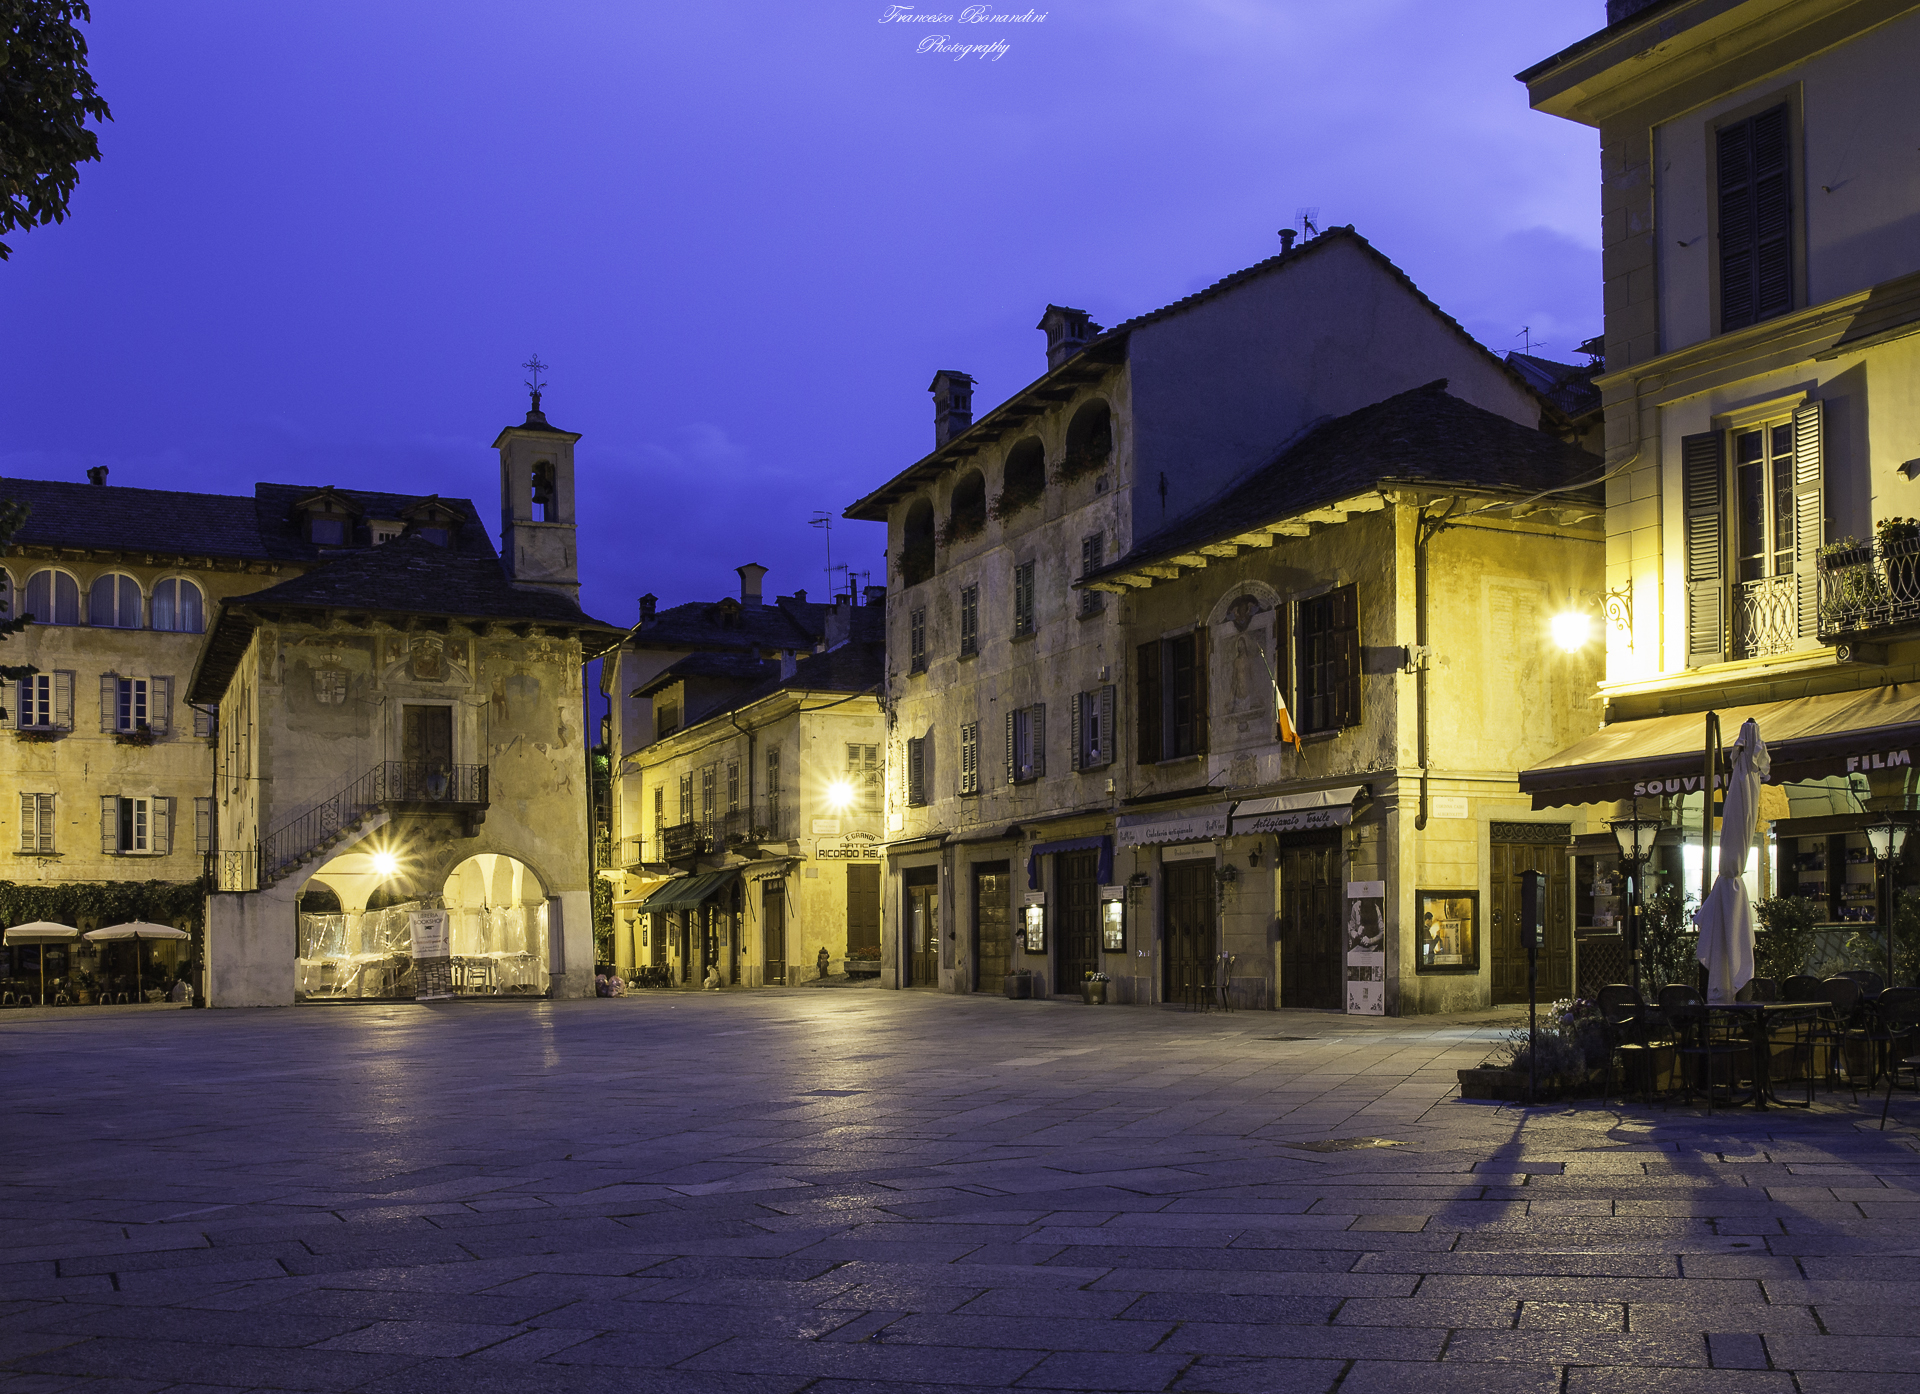 Piazzetta at the blue hour...